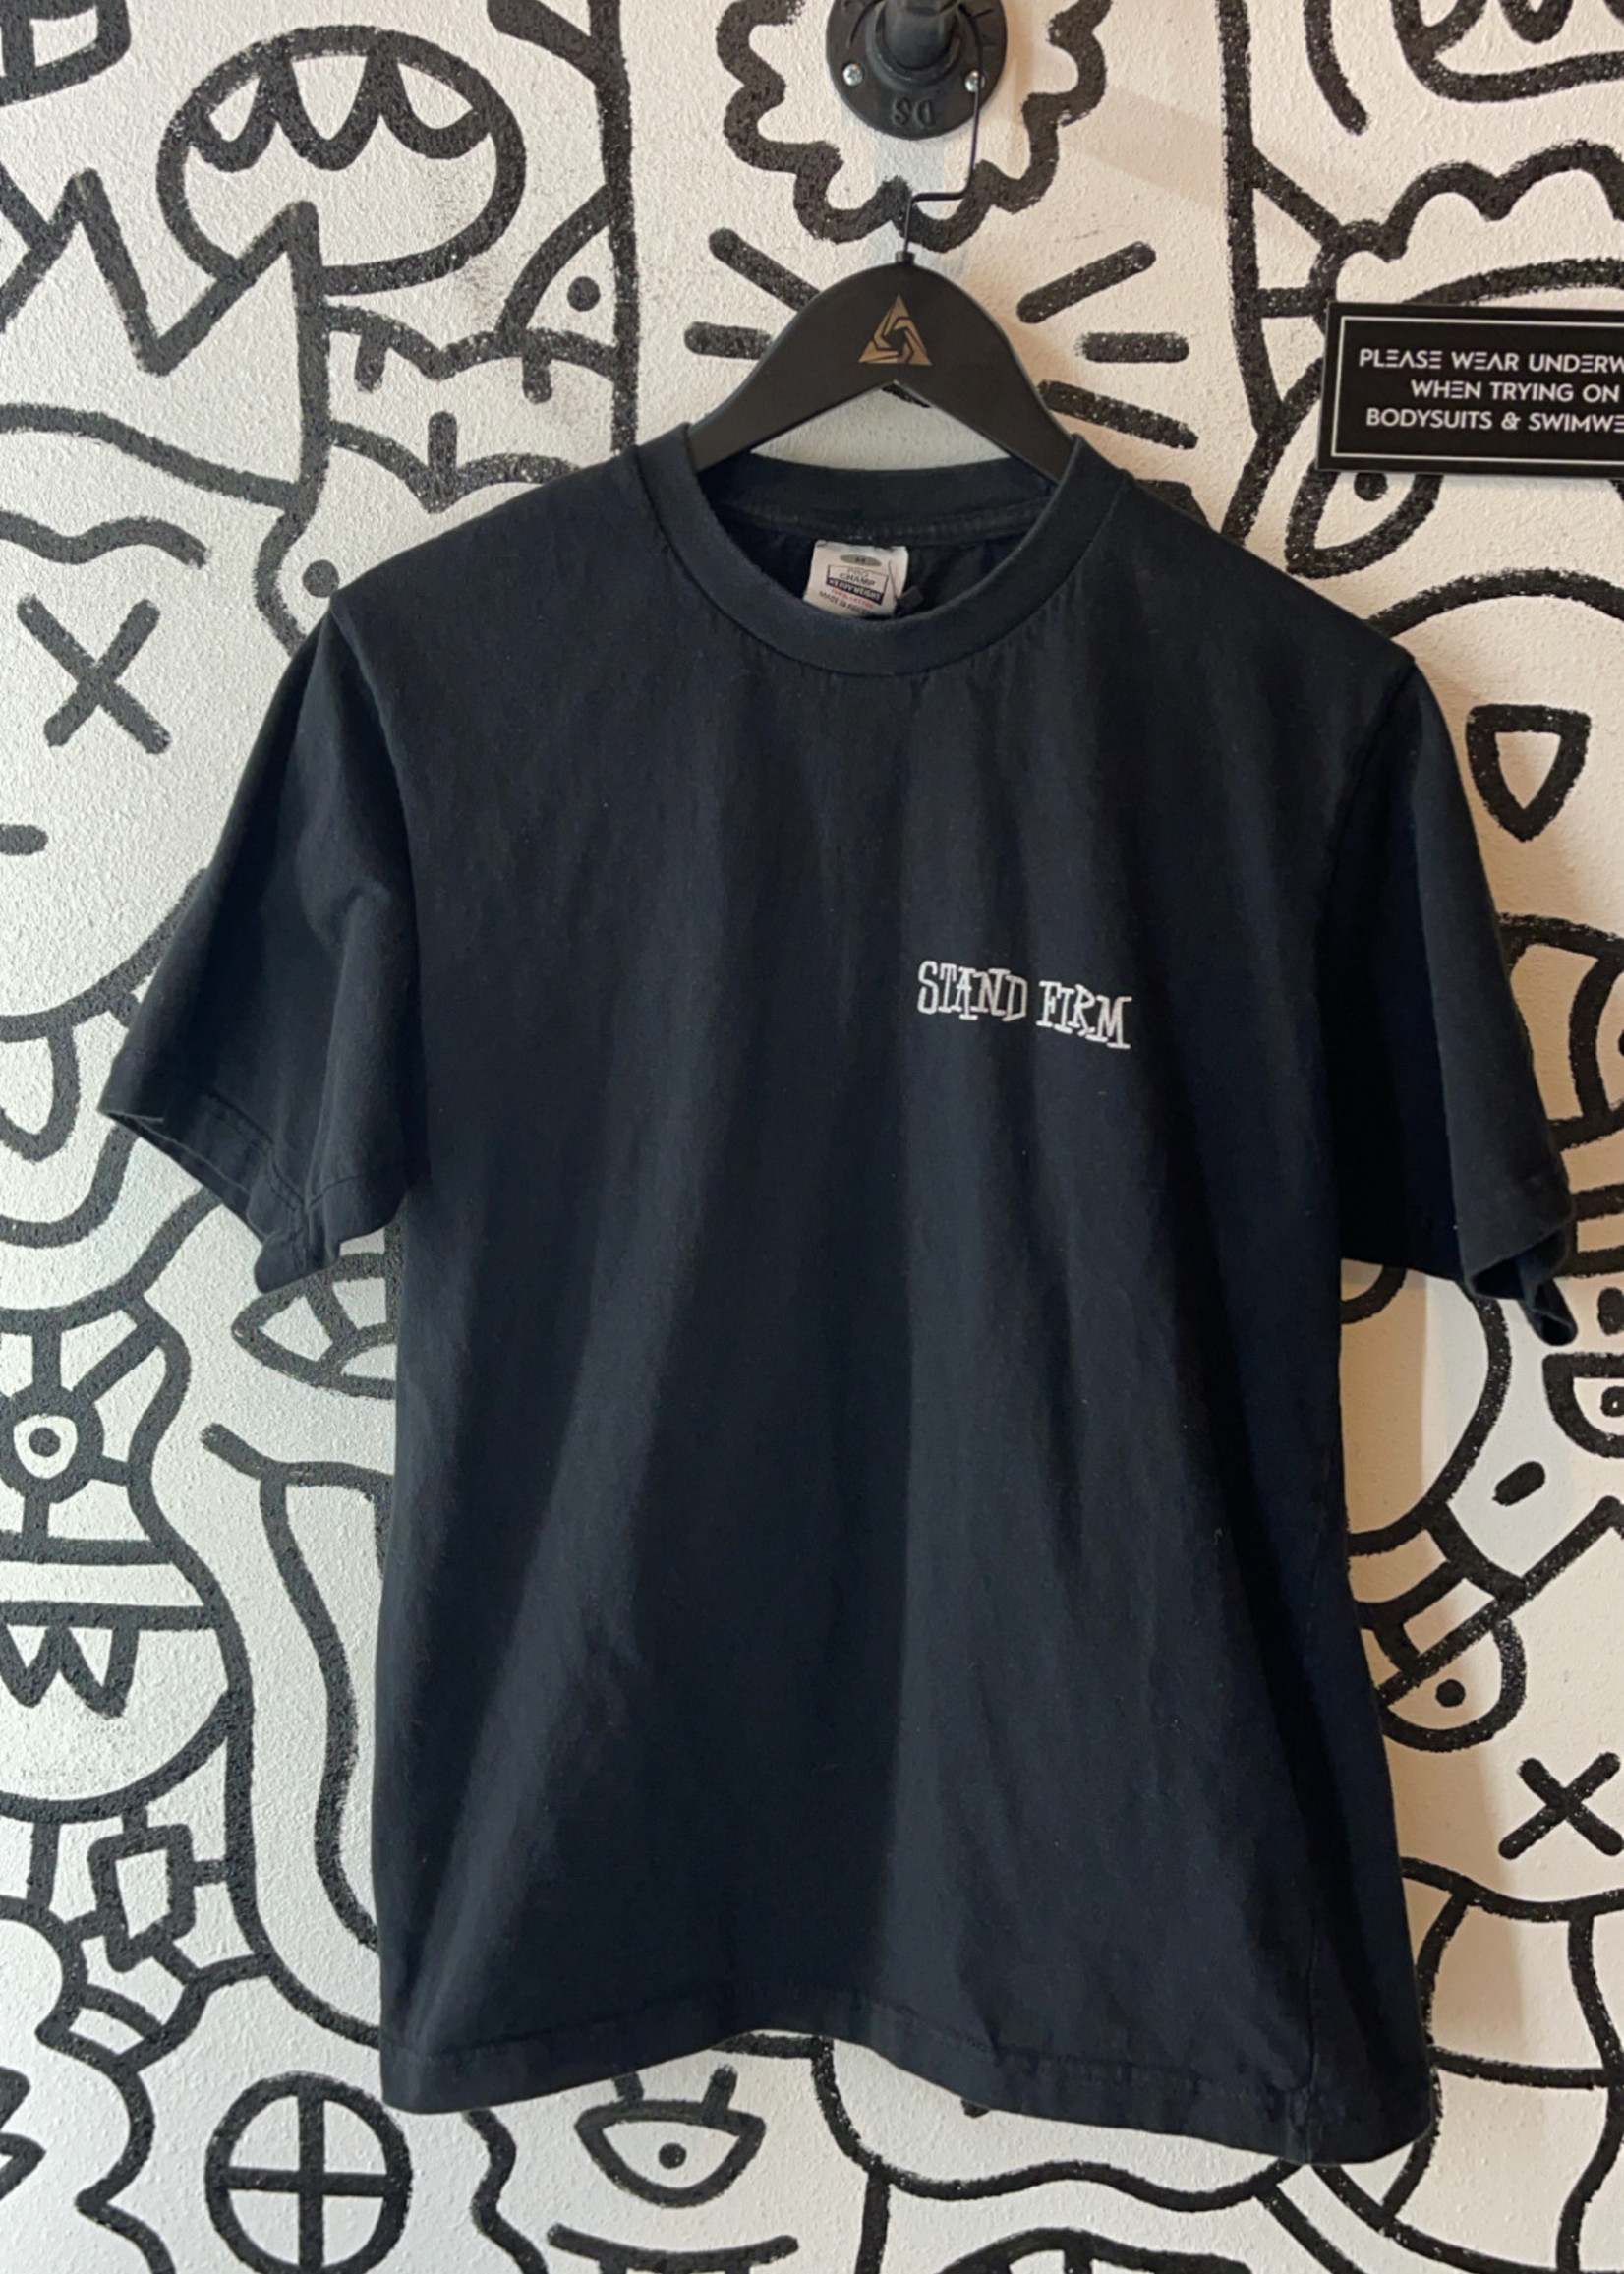 Stand Firm End Racism Black Tee M